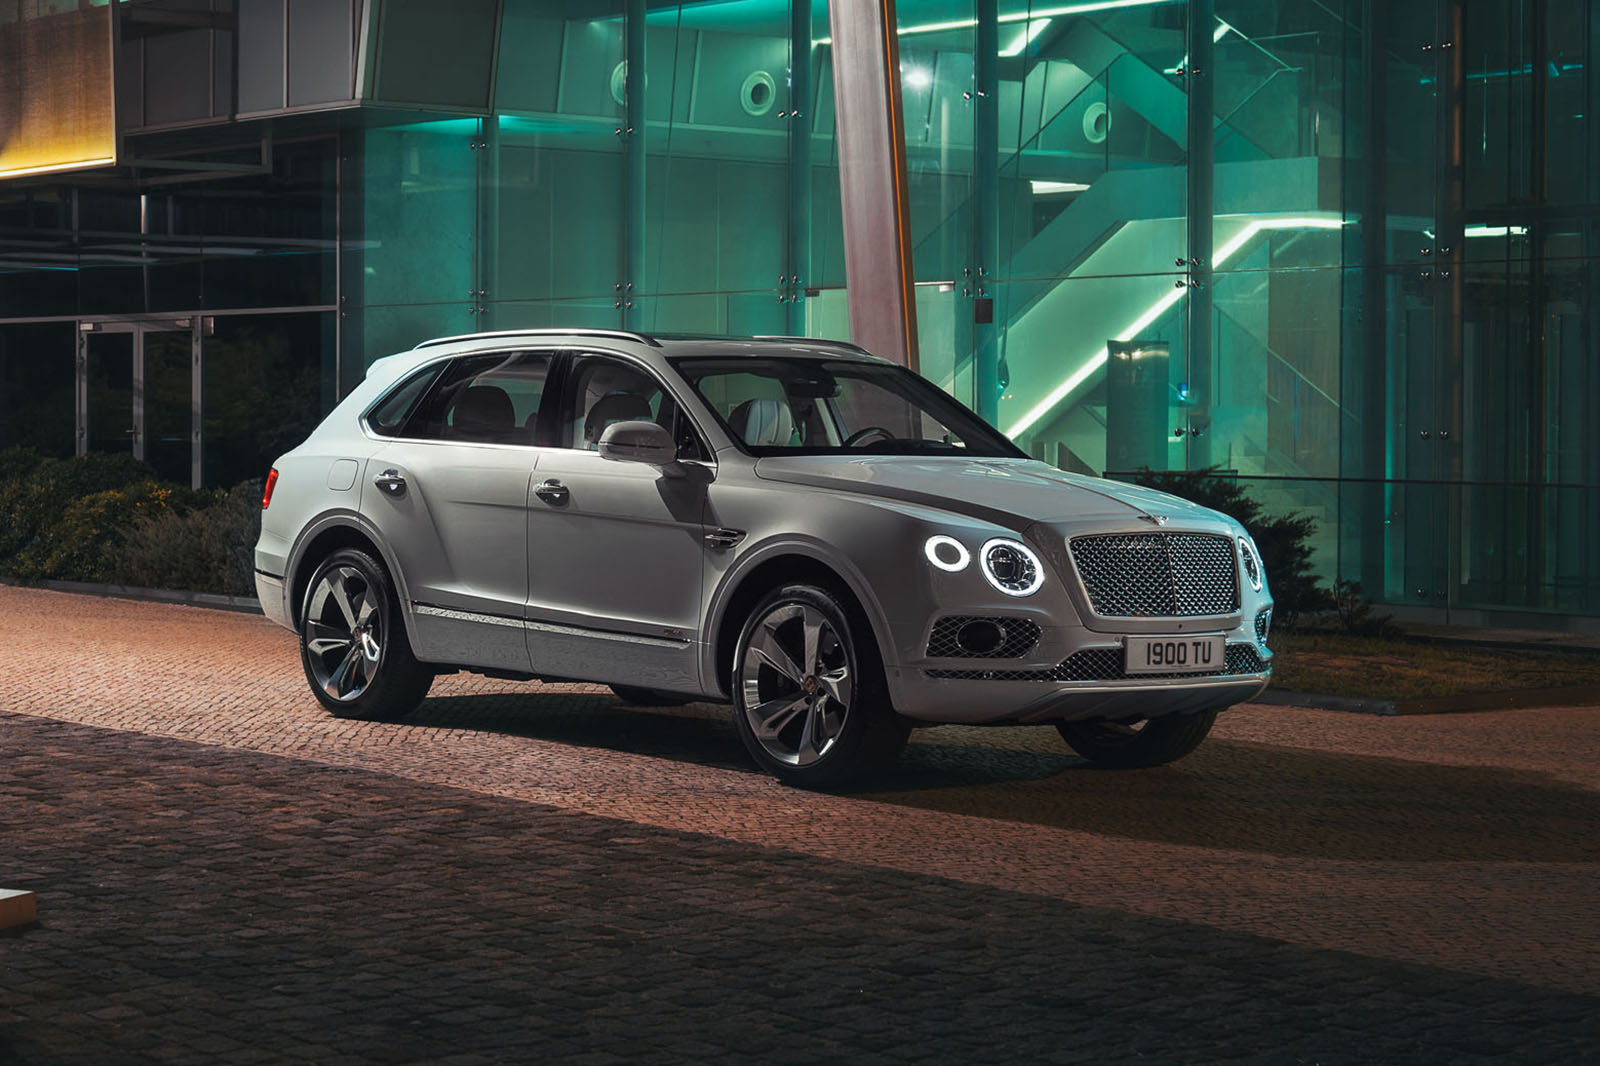 Hybrid Pickup Truck 2018 >> 2019 Bentley Bentayga Plug-in Hybrid Leaked Hours Before Its Official Release - autoevolution